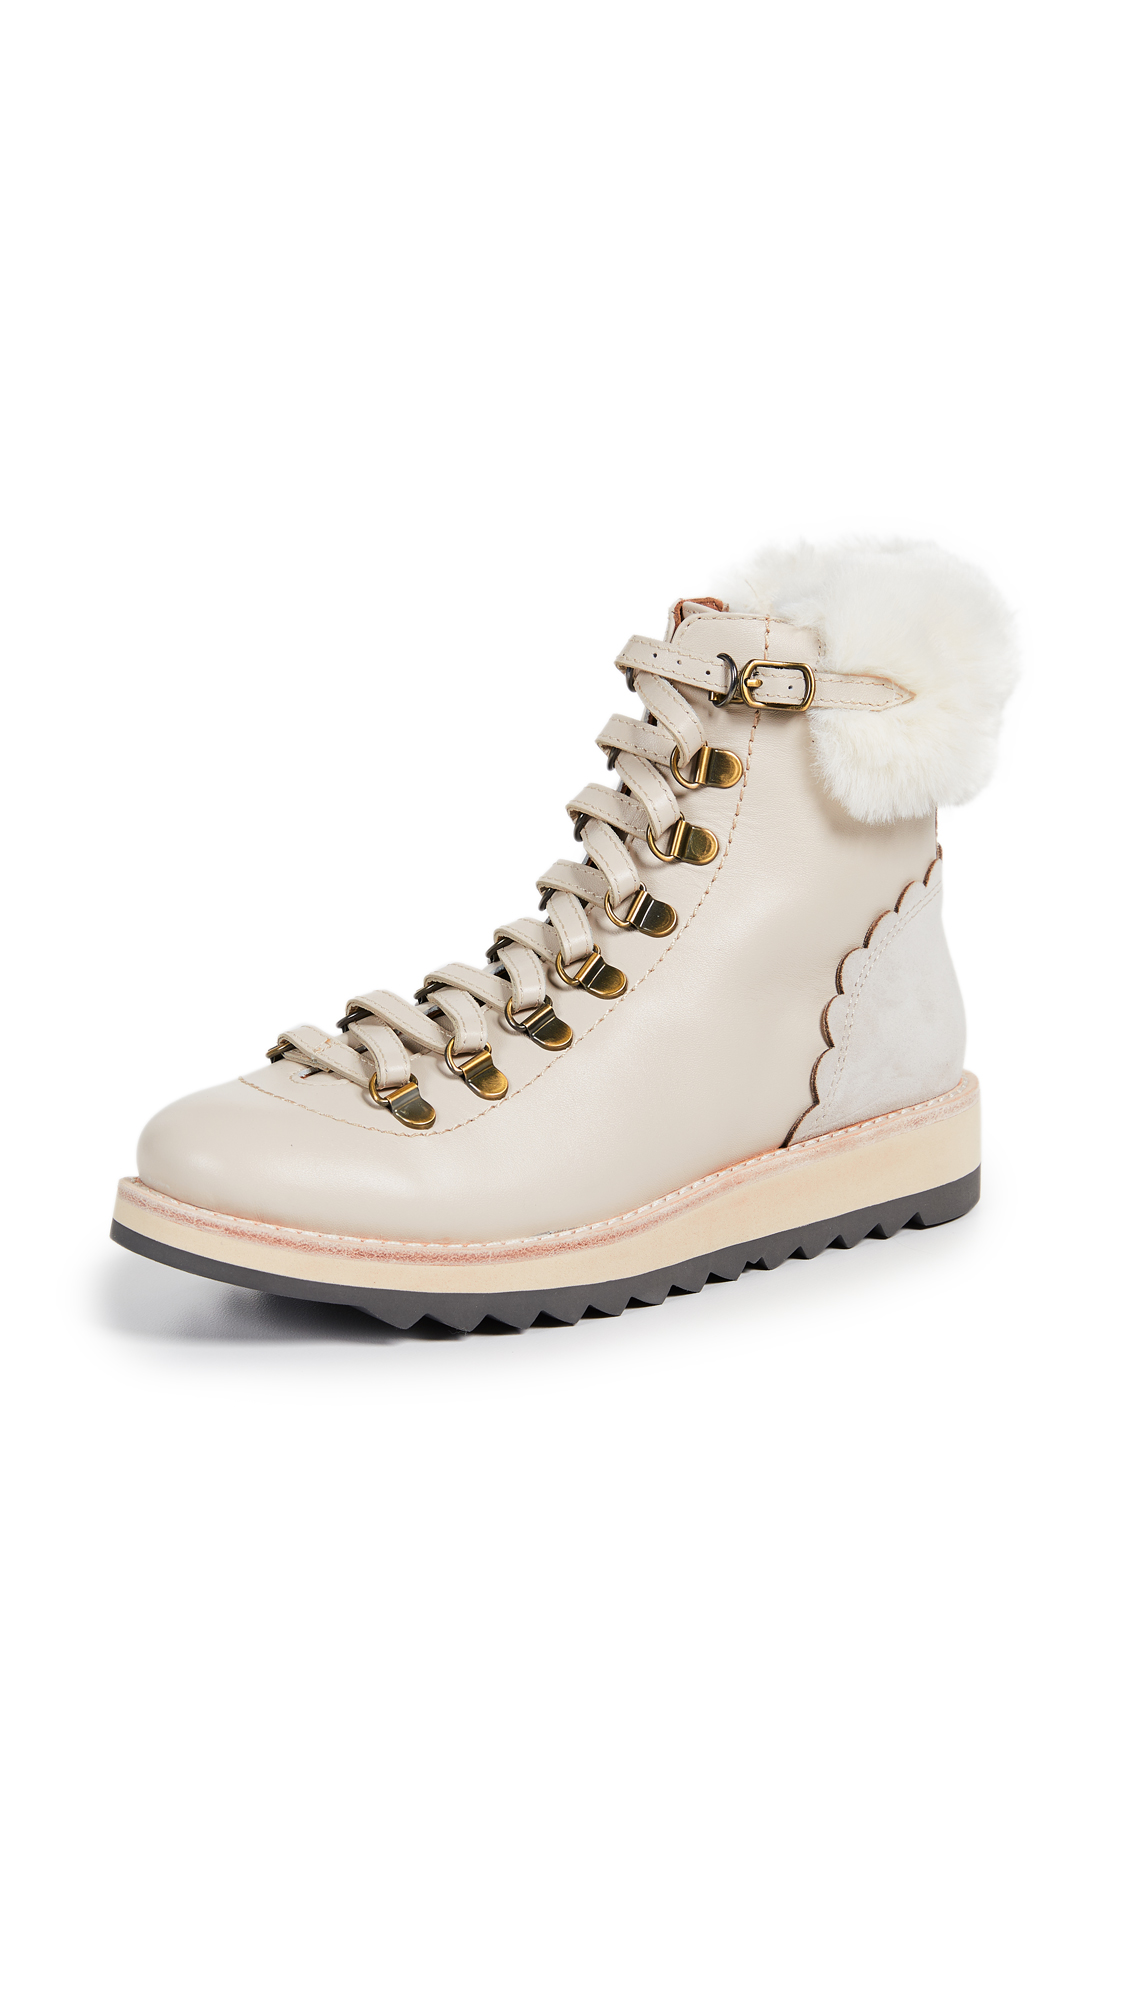 Kate Spade New York Maira Combat Boots - Off White